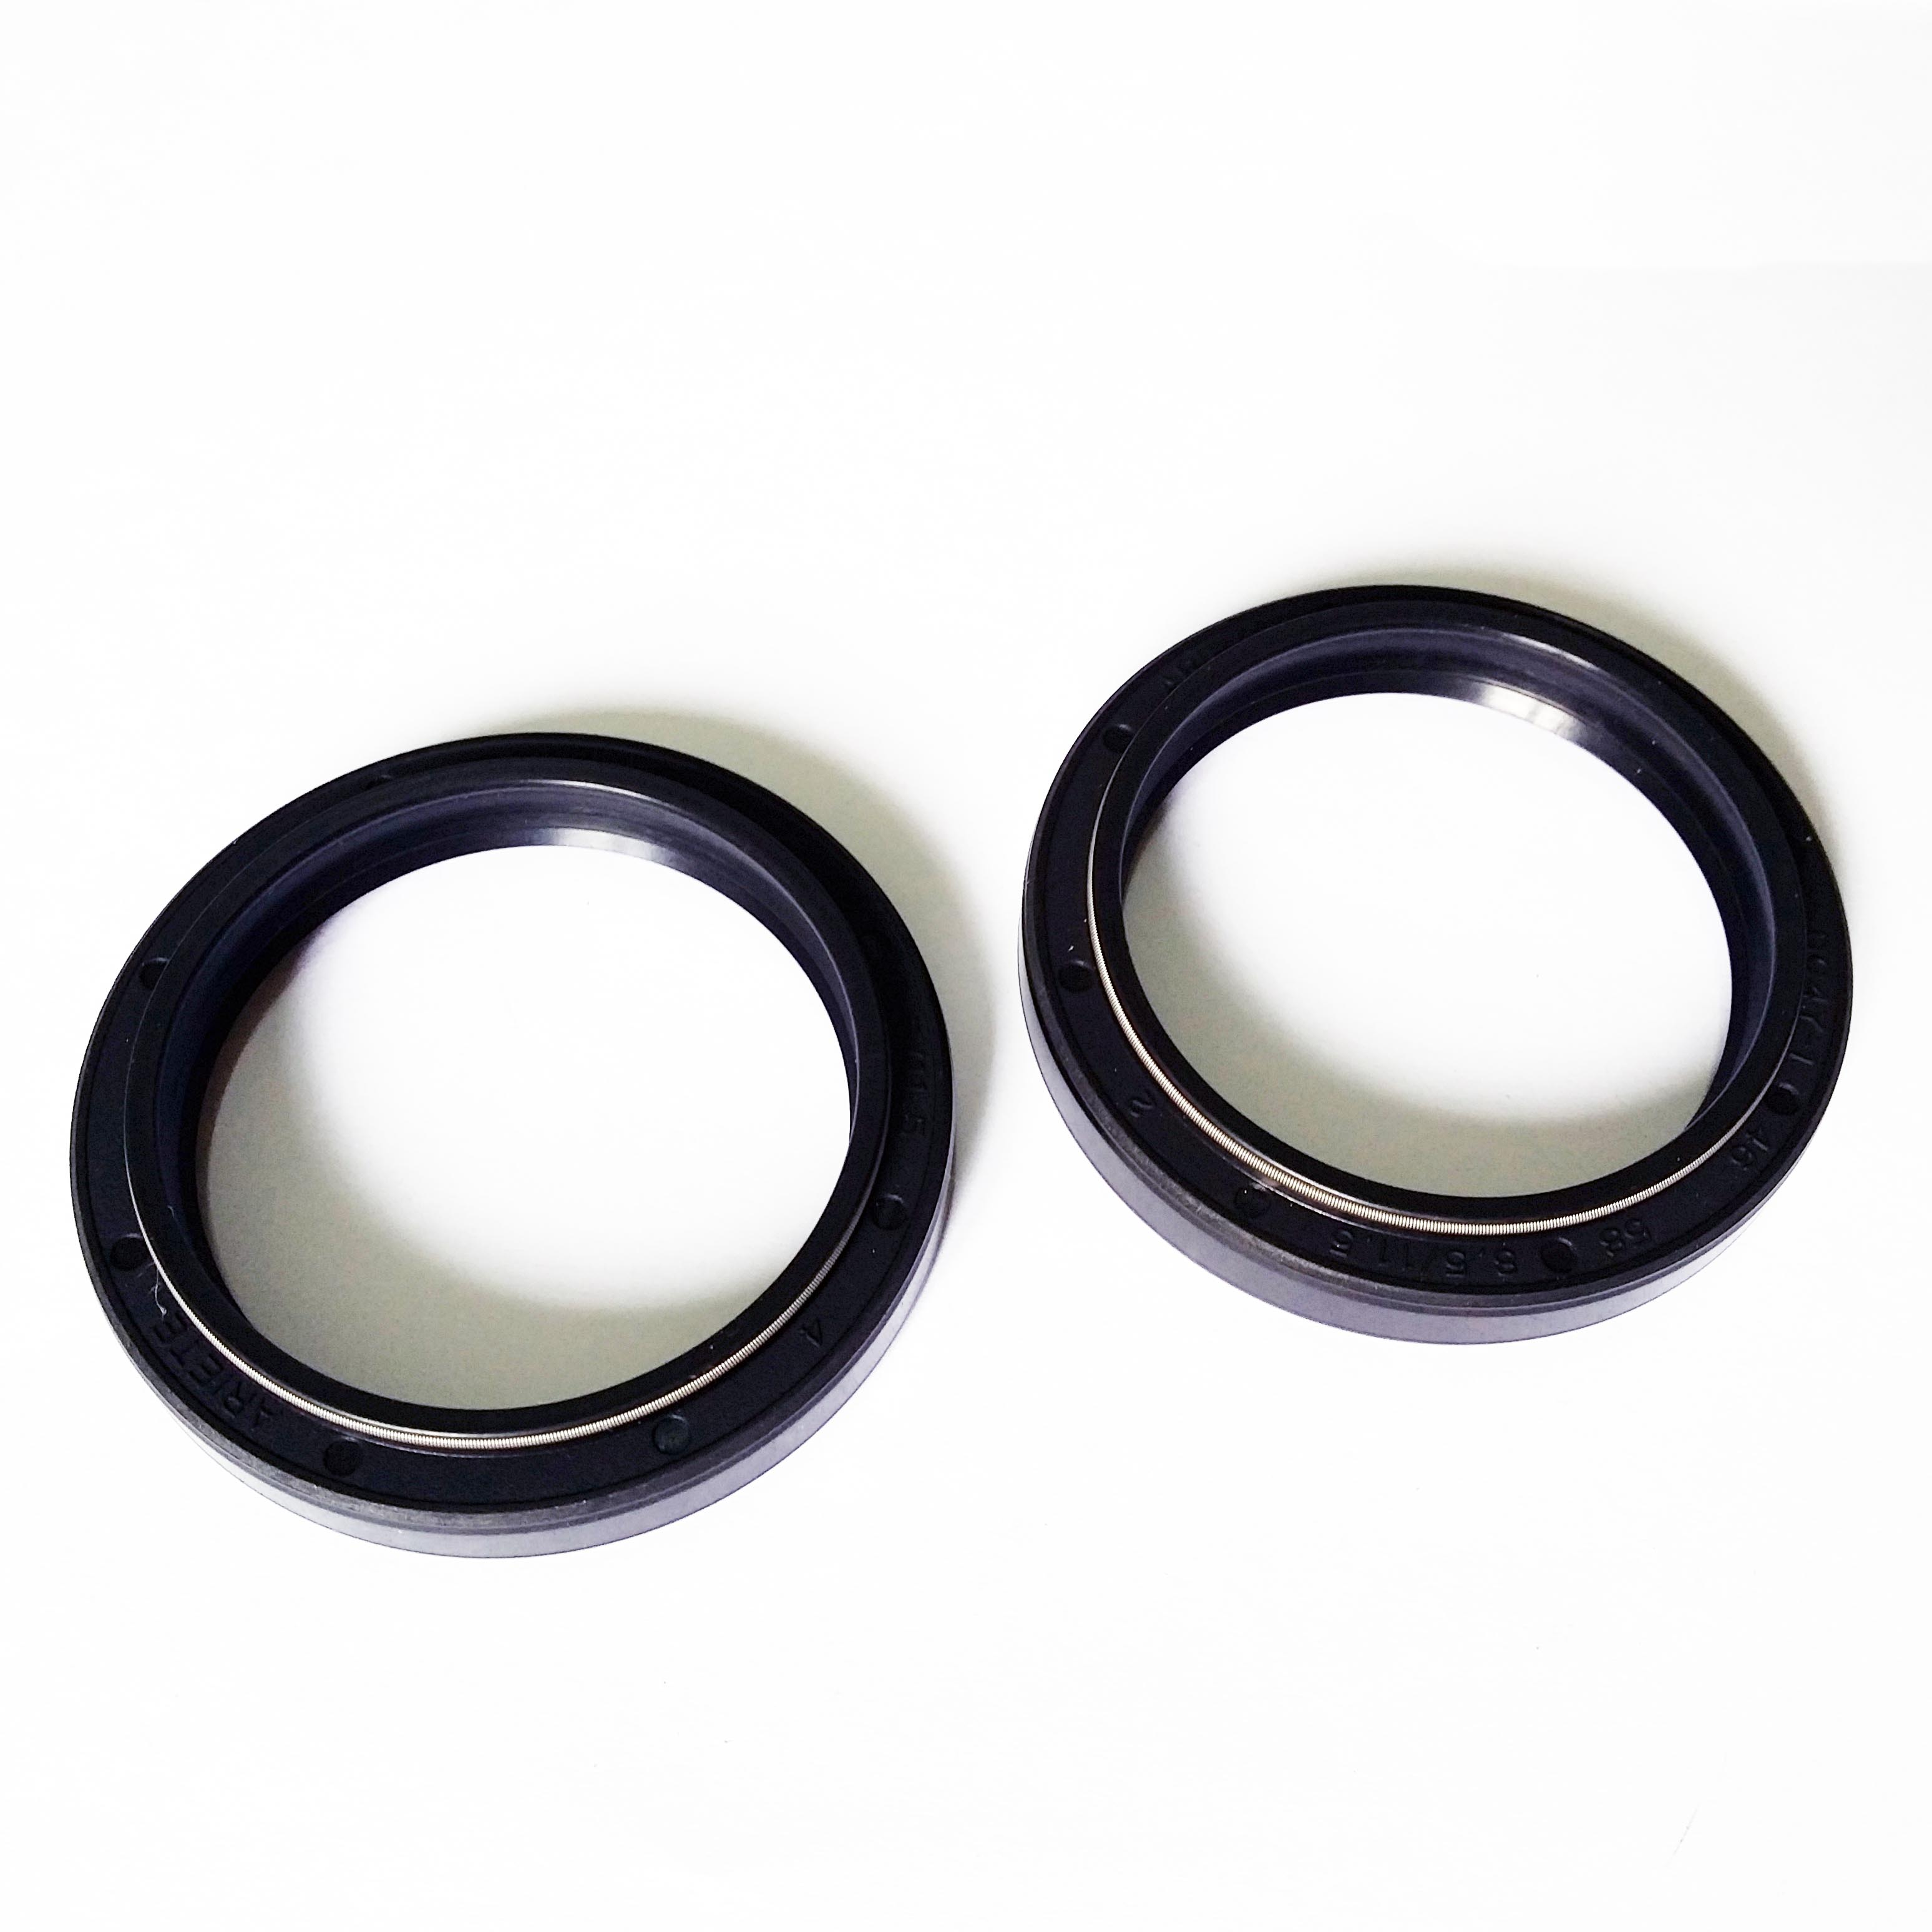 K-Tech Suzuki GSXR600   2004-2005 NOK Front Fork Oil Seals 43x54x11mm